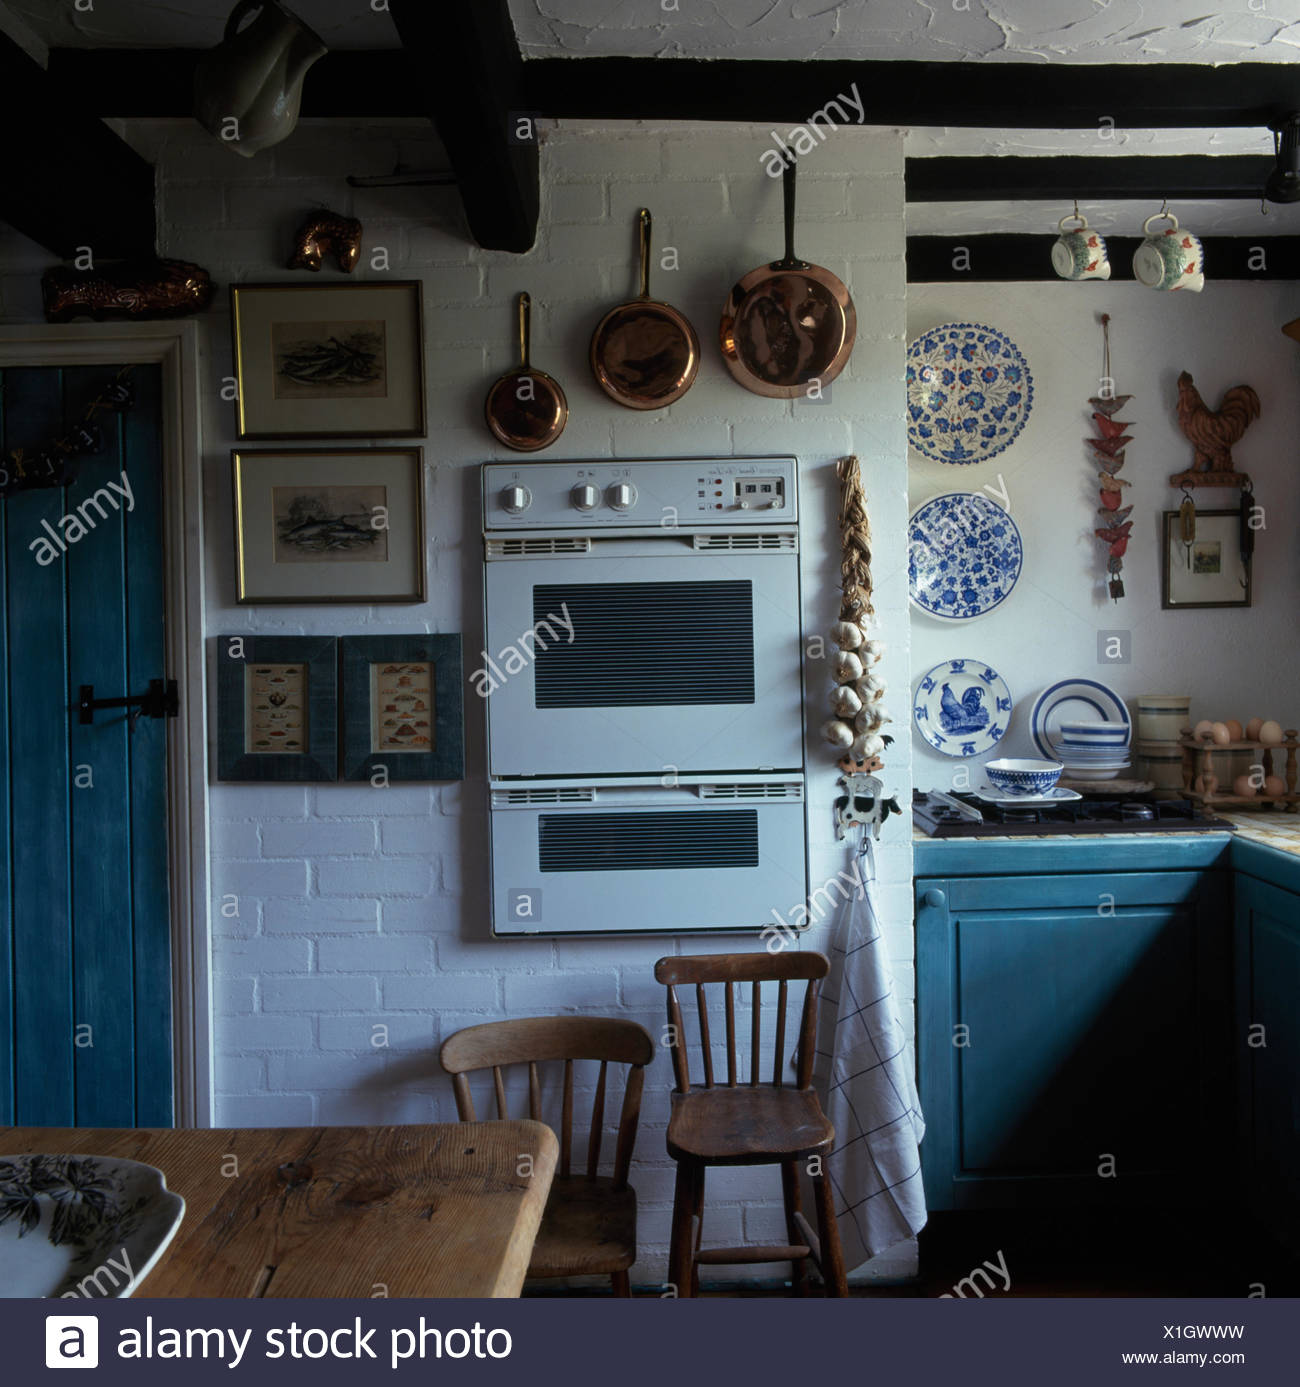 White Nineties Kitchen Stock Photos & White Nineties Kitchen Stock ...